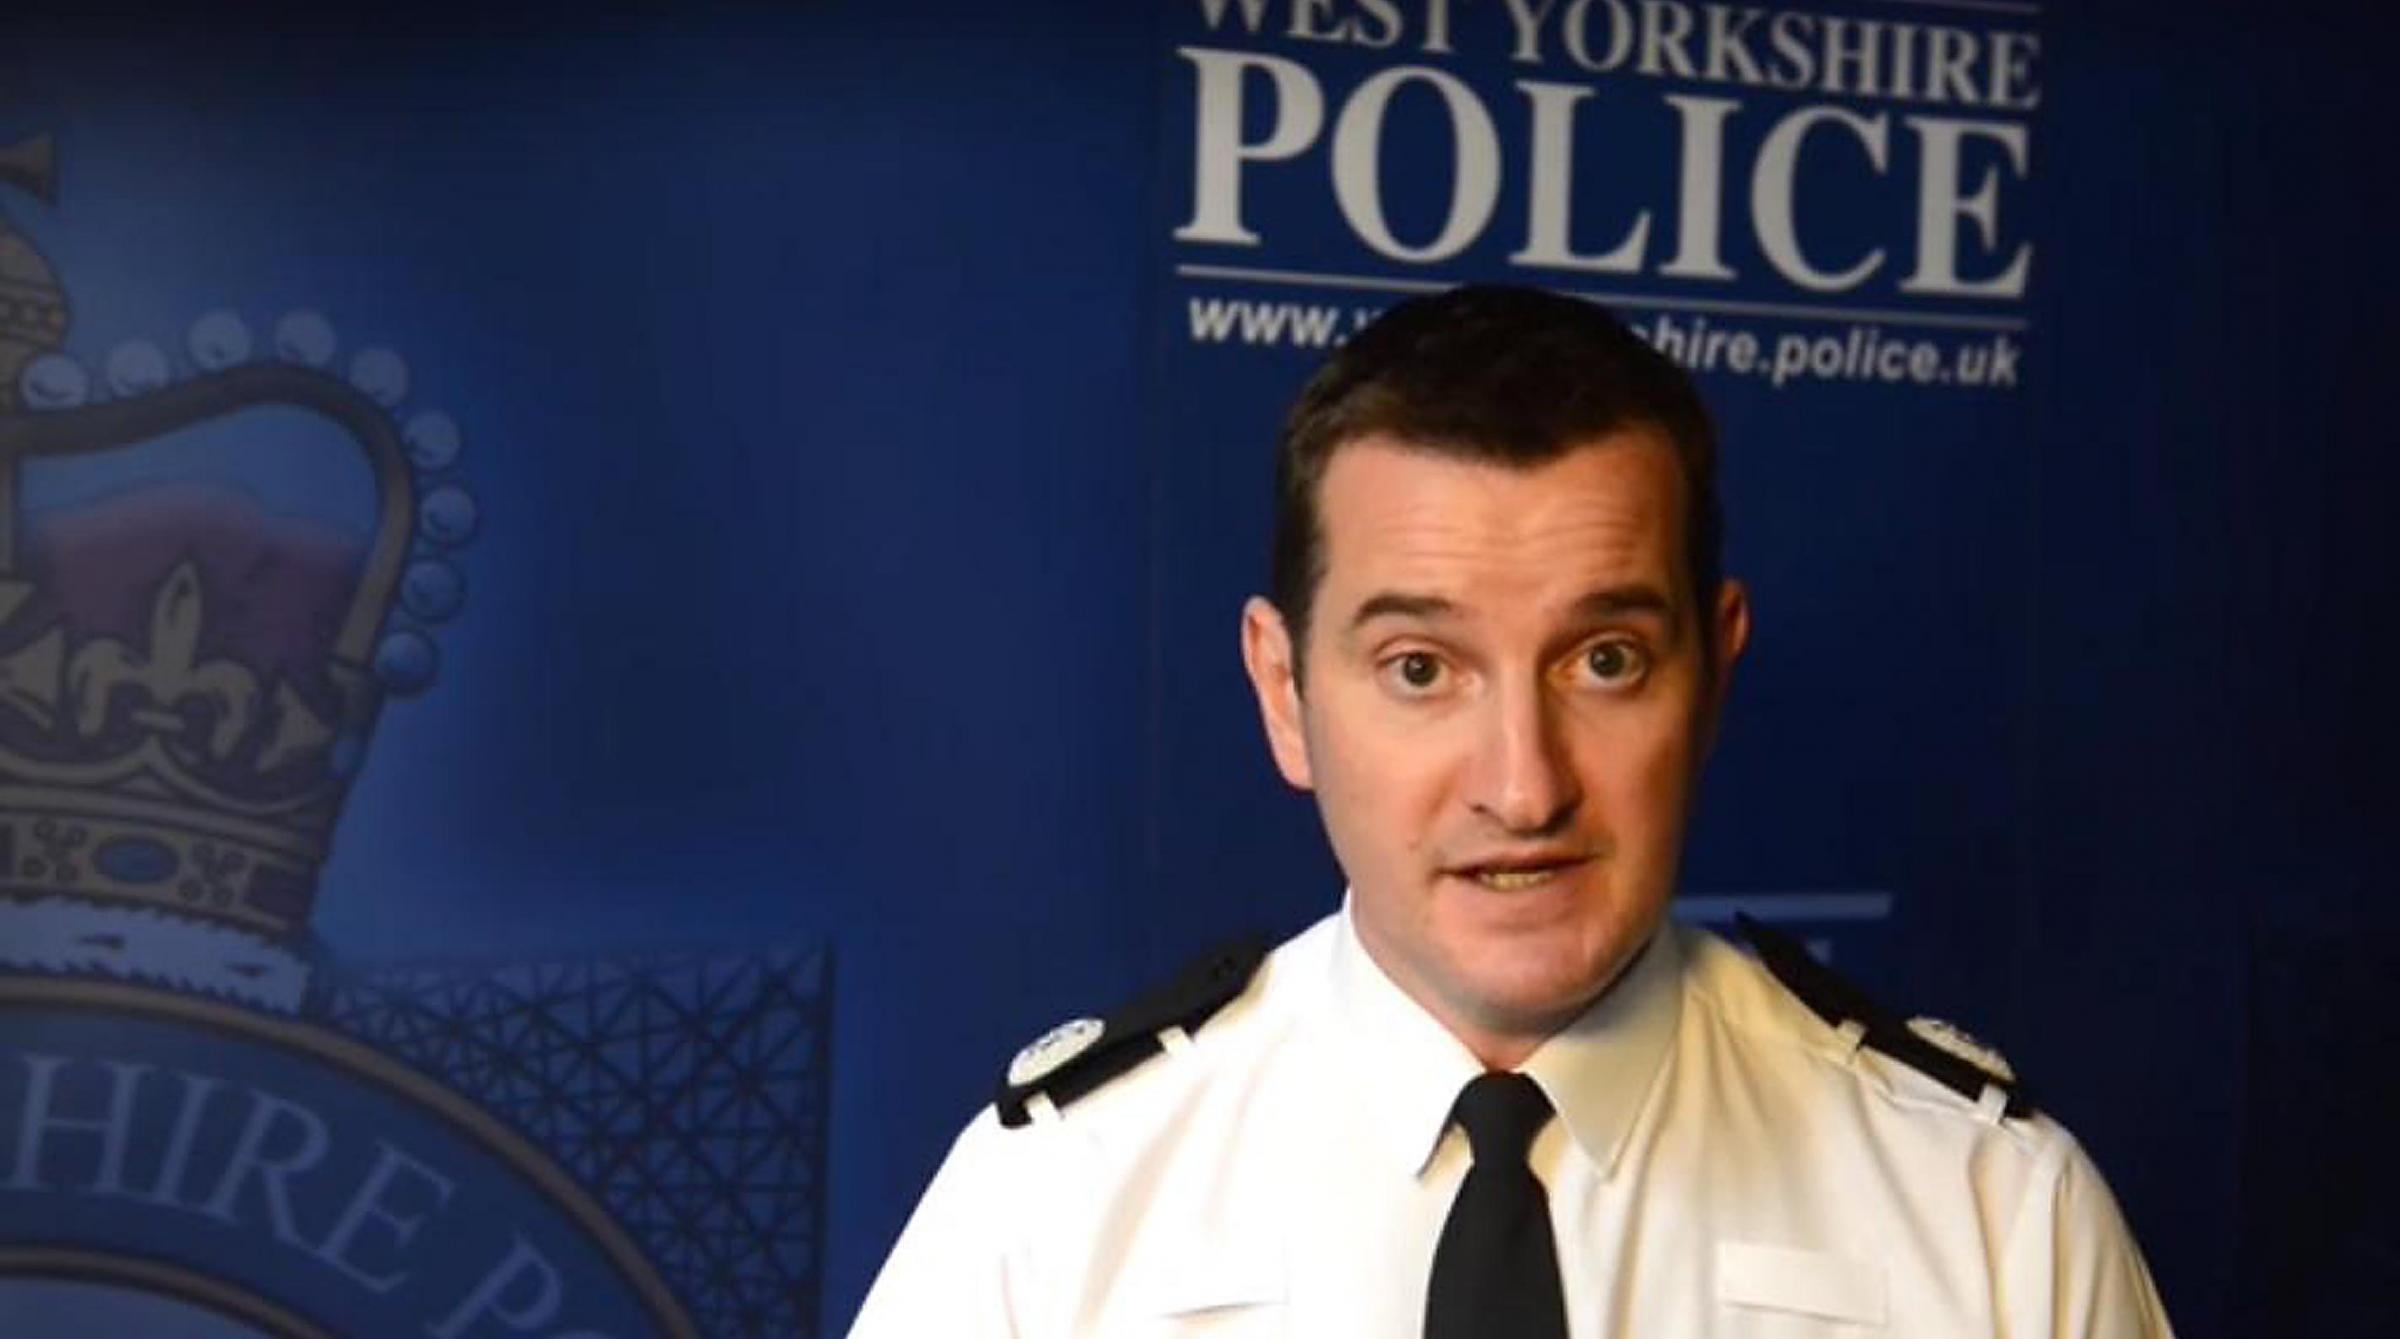 Assistant Chief Constable John Robins